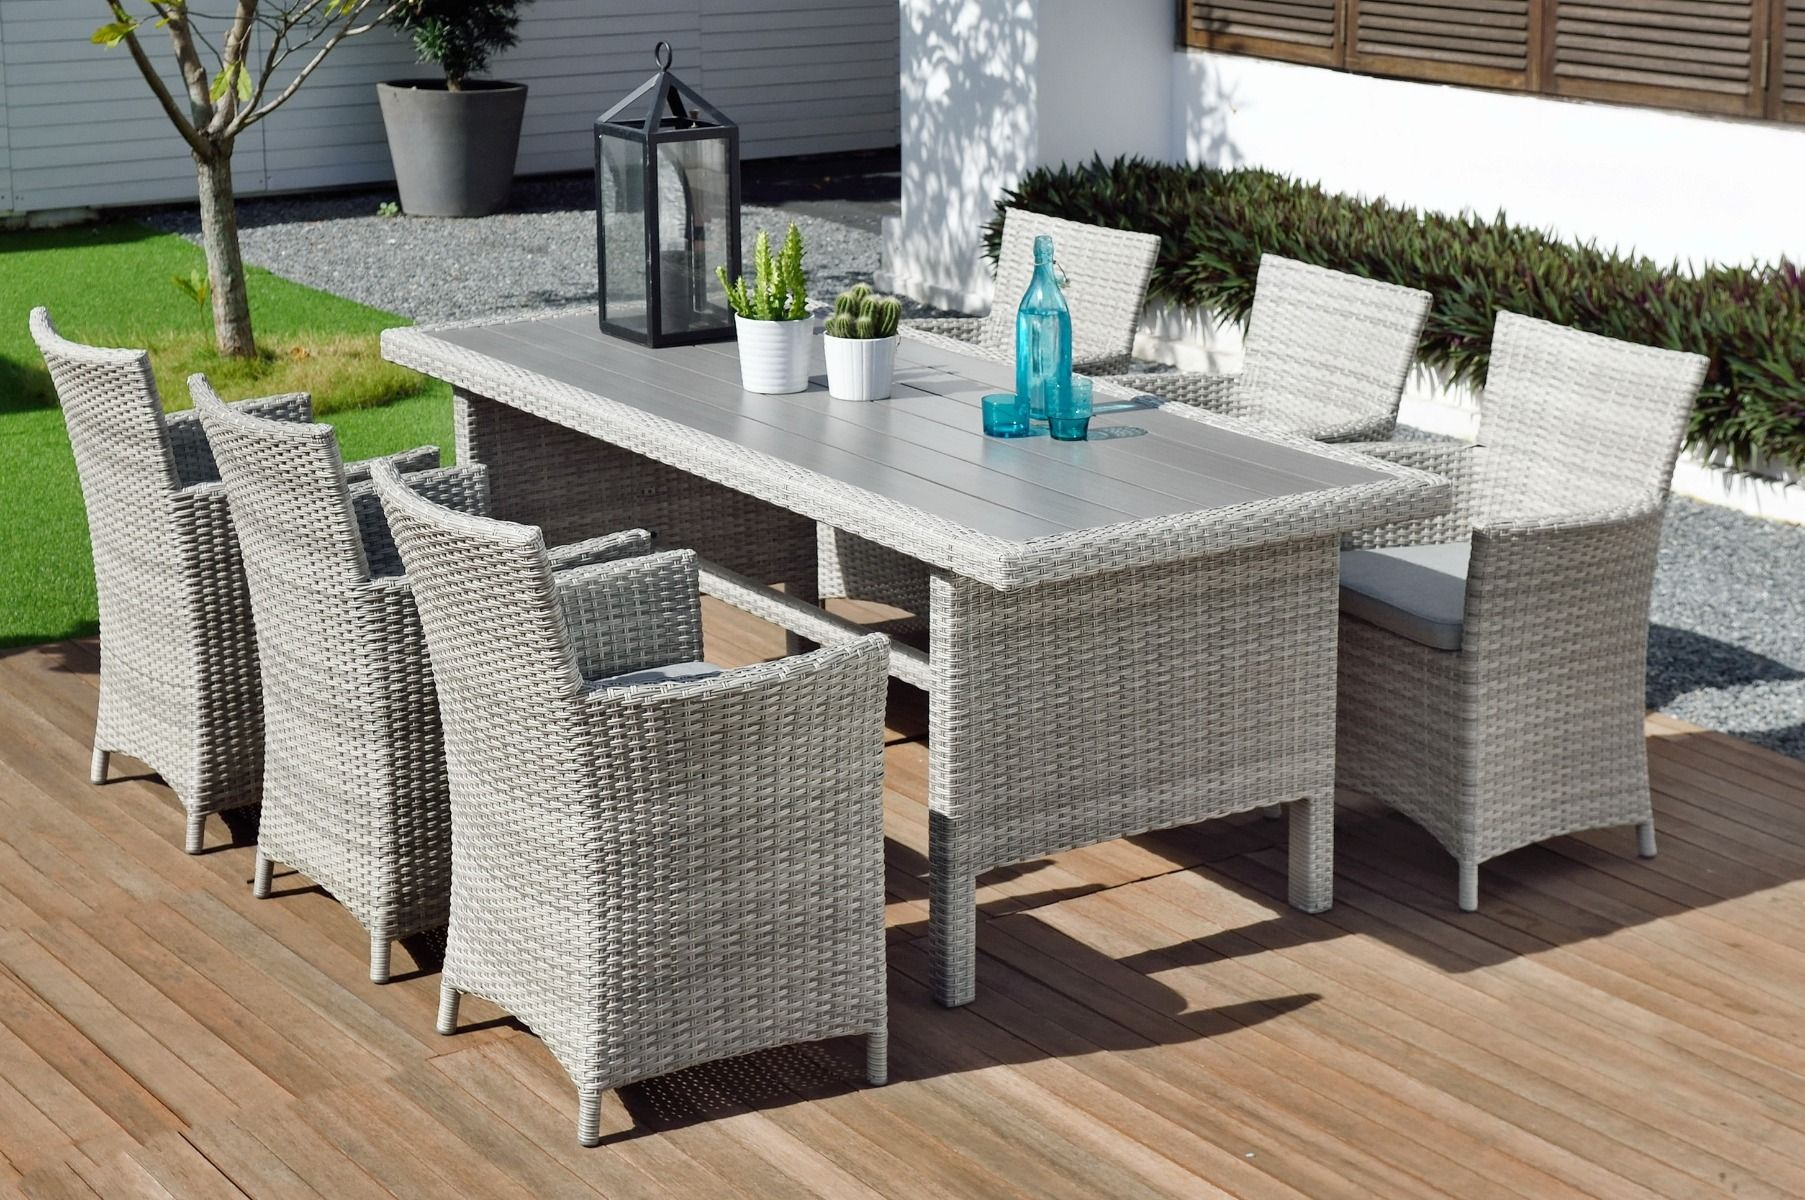 LifestyleGarden Aruba 6 Seat Rectangular Table Set | Local Delivery Only